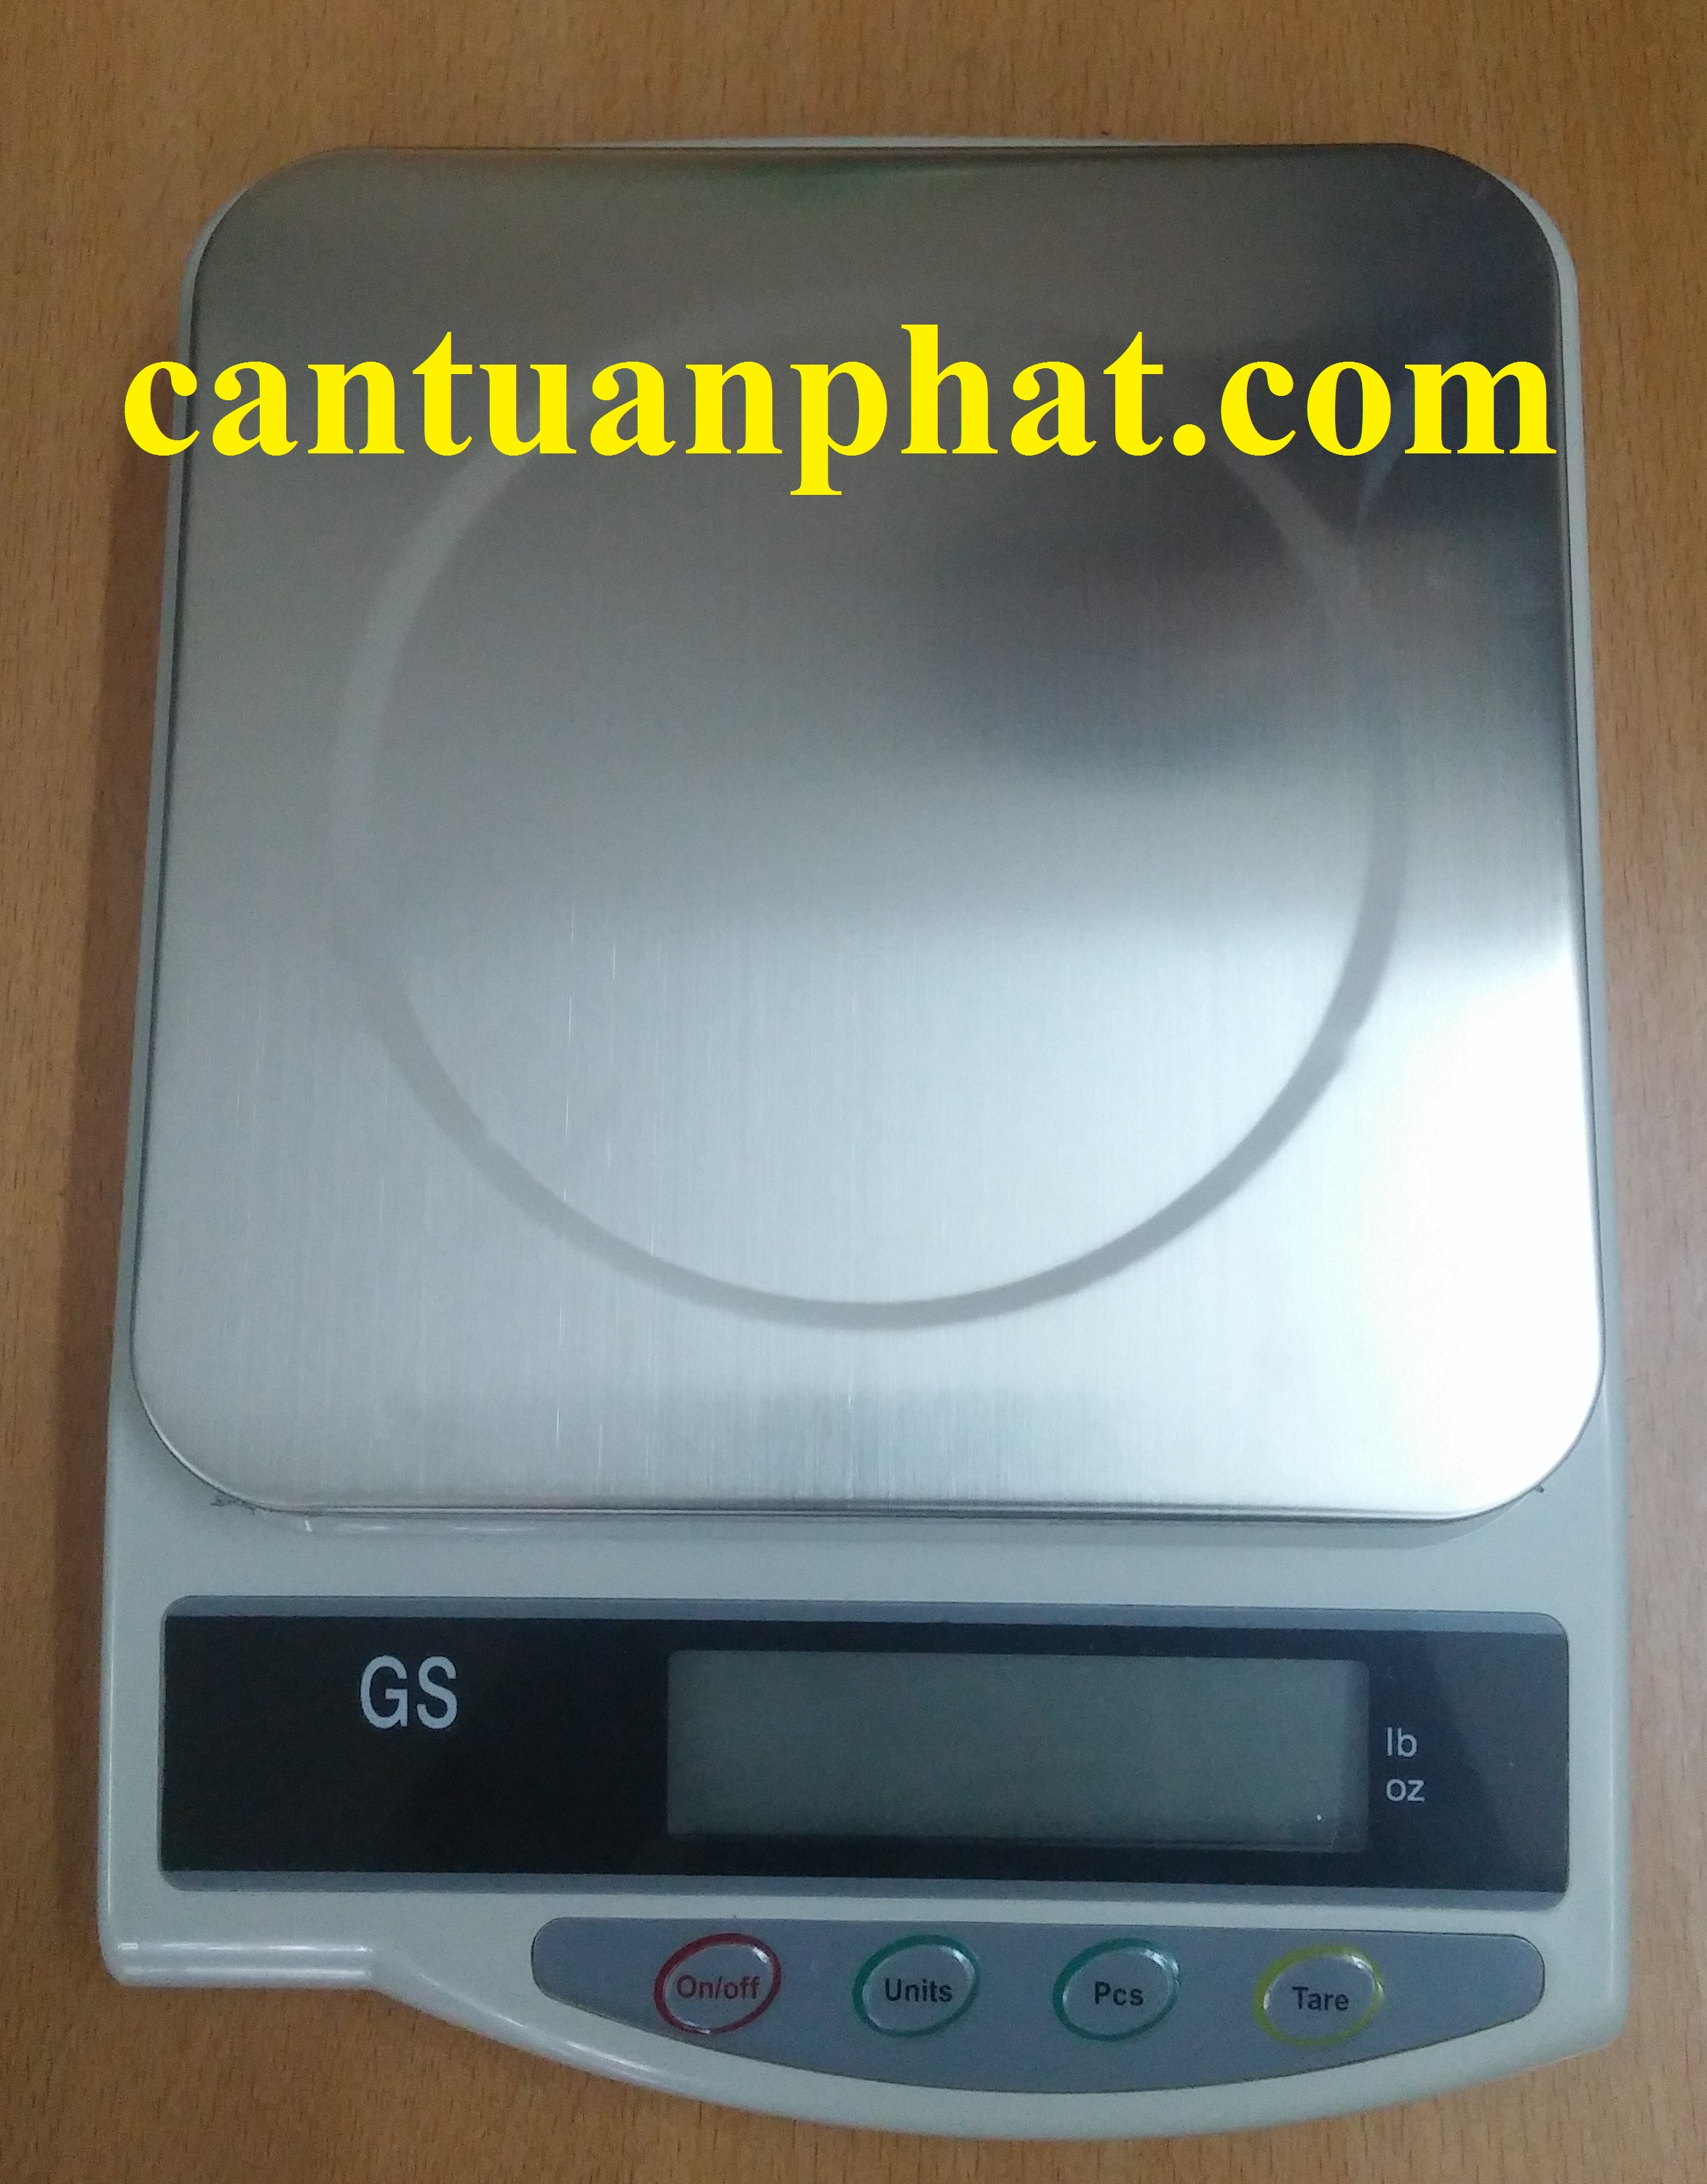 http://cantuanphat.com/pic/Product/2147_637007937767461017.jpg